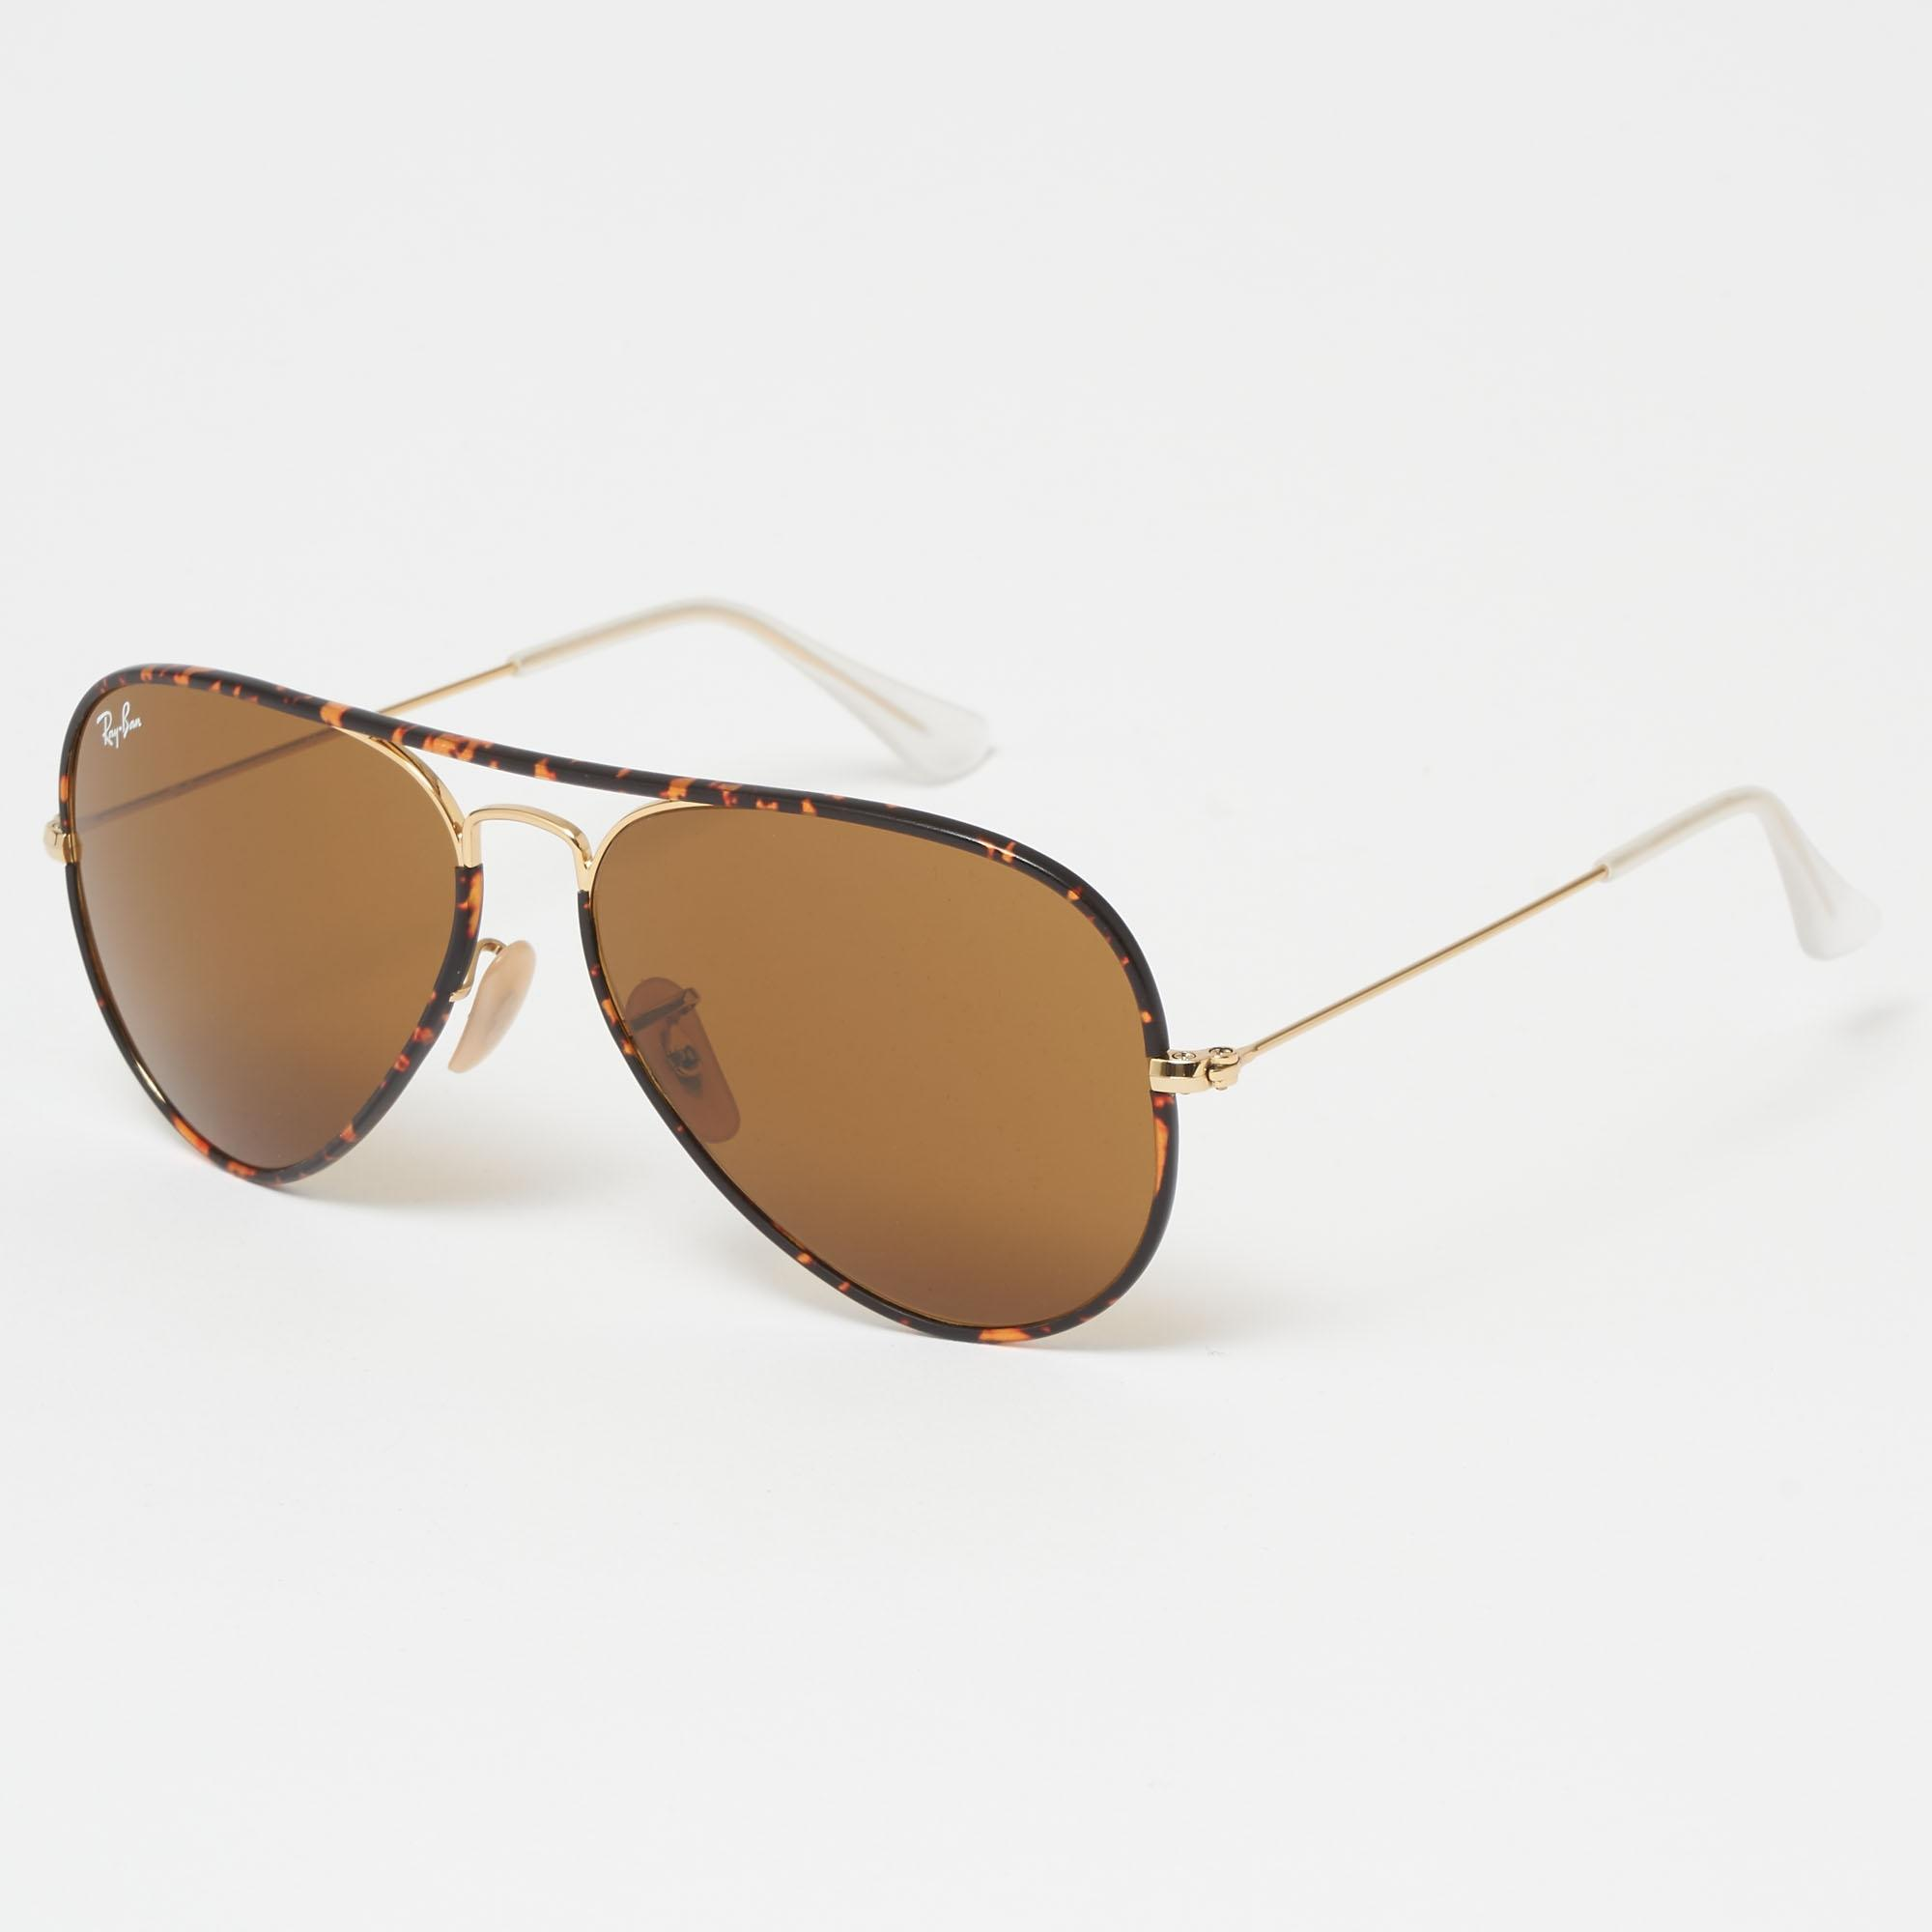 c567095f73 Lyst - Ray-Ban Tortoise Aviator Full Colour Sunglasses - Brown ...